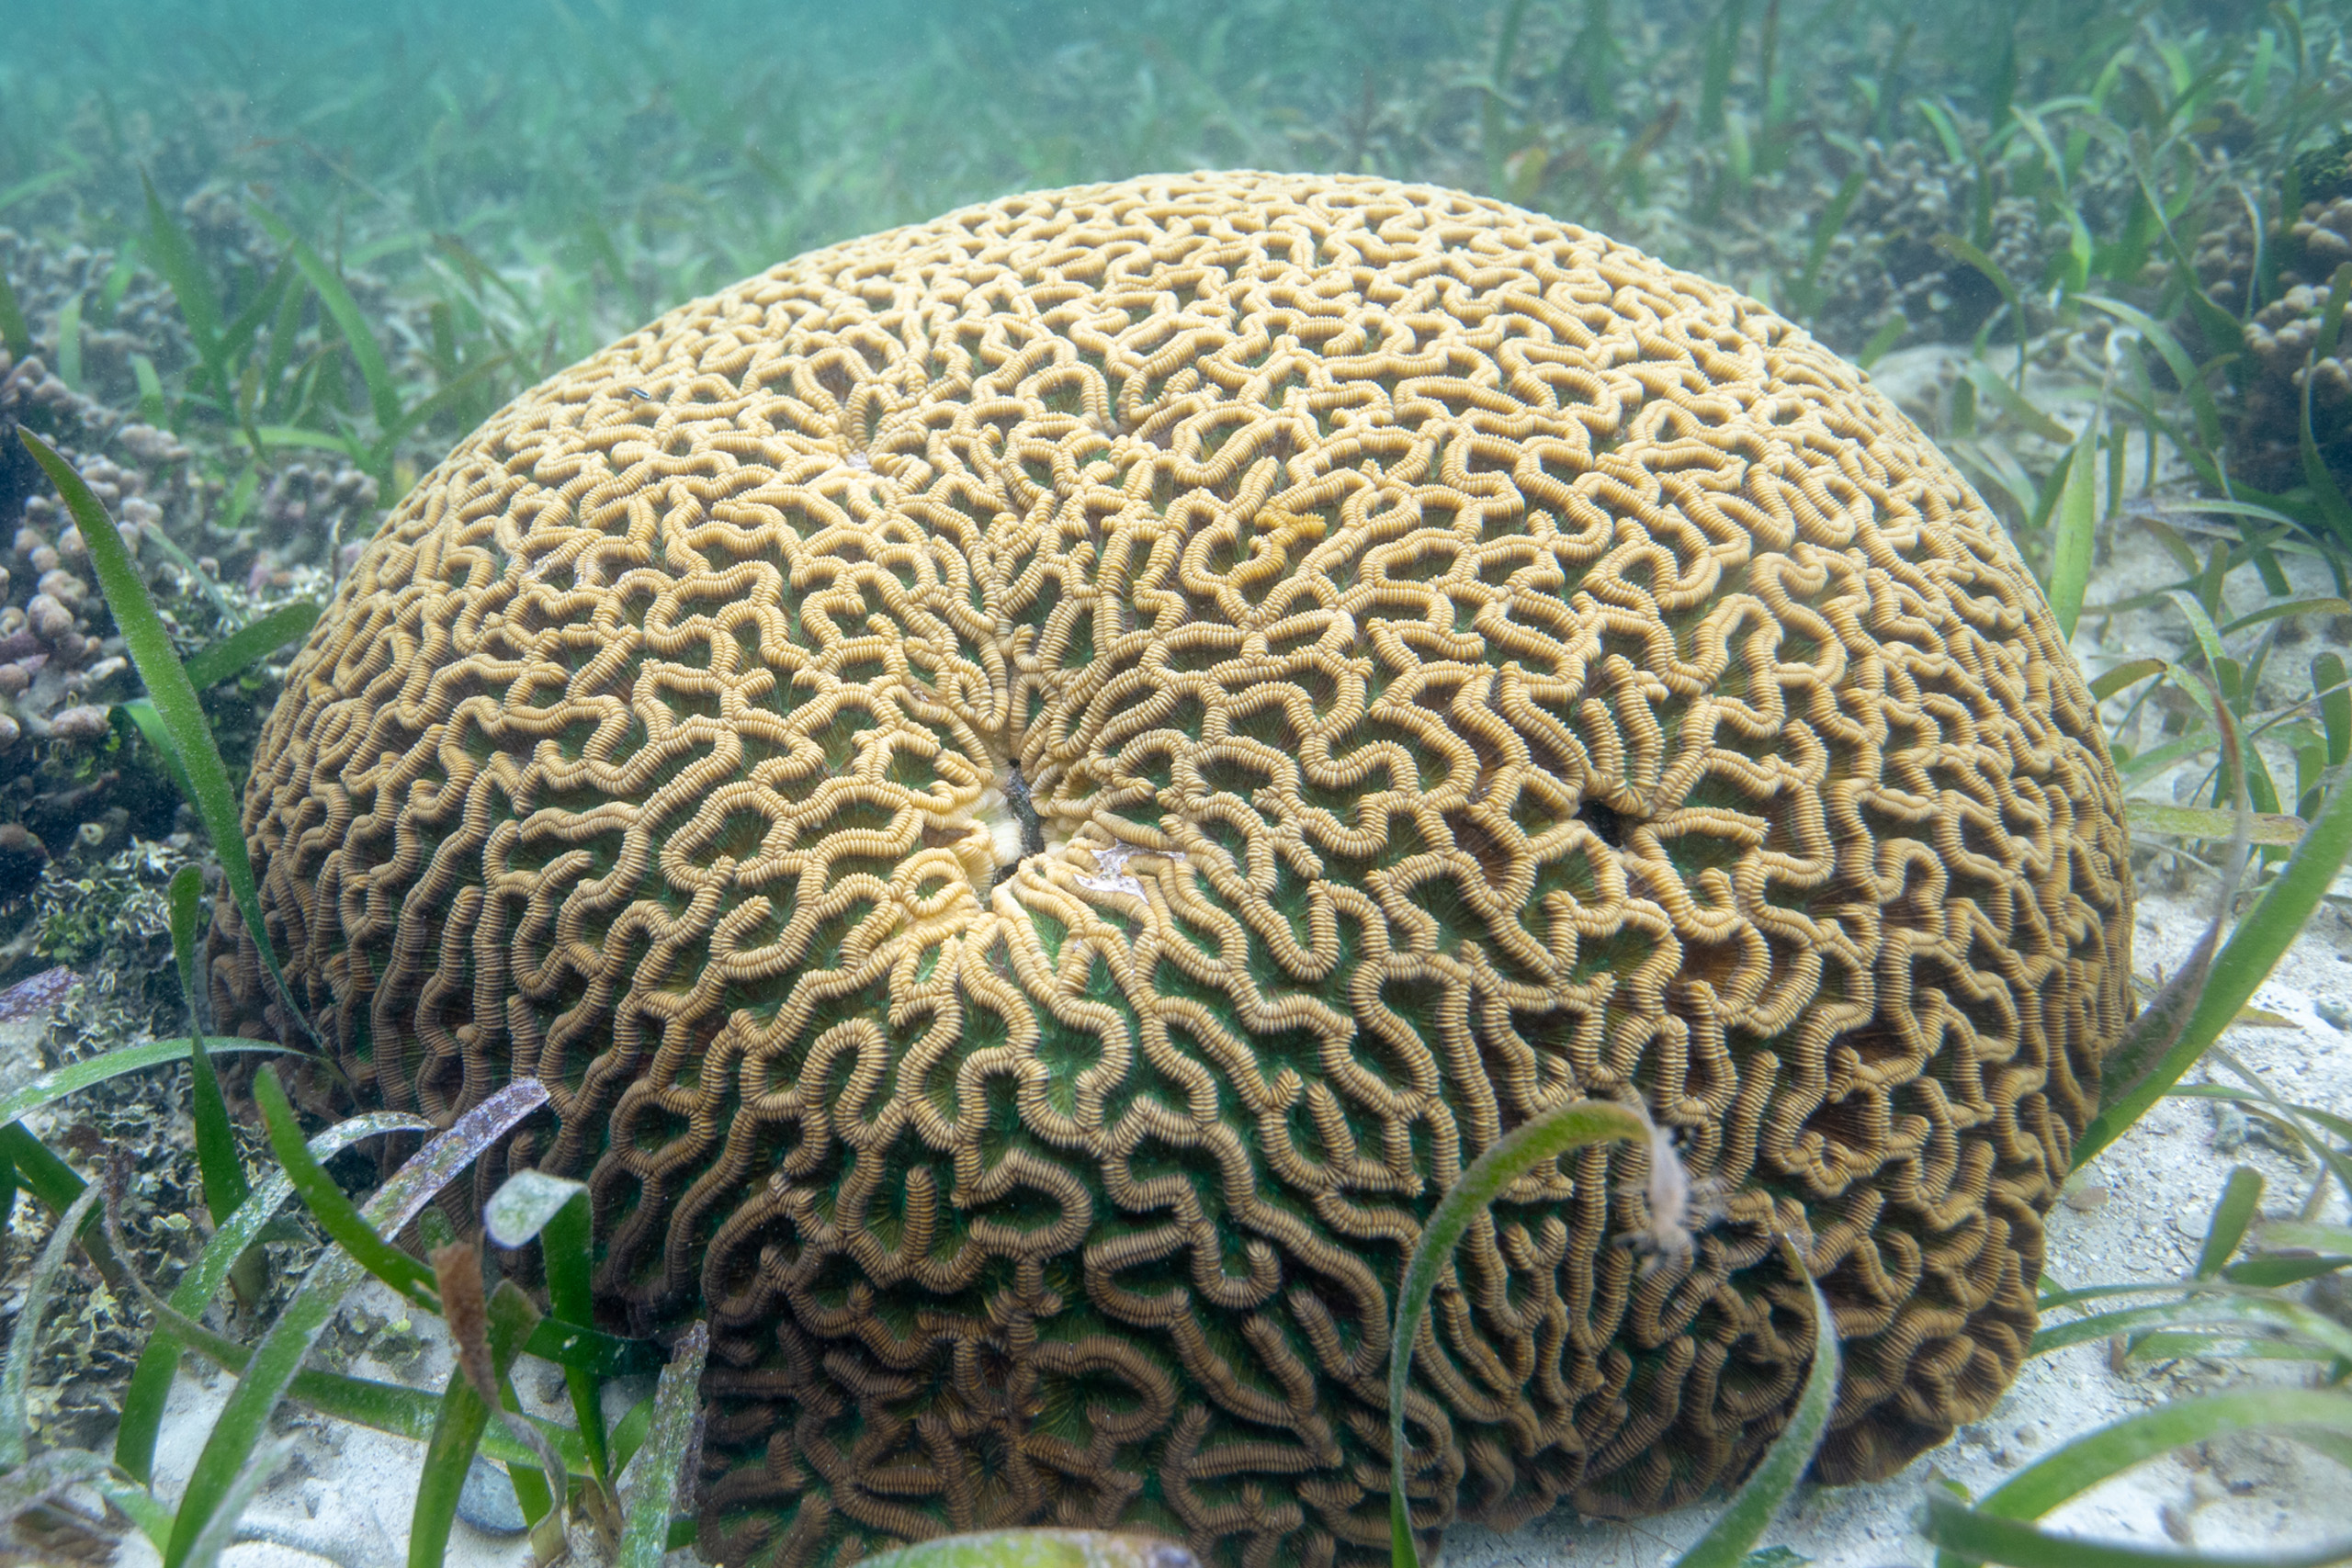 In an unlikely phenomenon, large corals are growing several meters into the mangrove forests in Bocas del Toro, even changing their shape and color as they do, such as this brain coral.